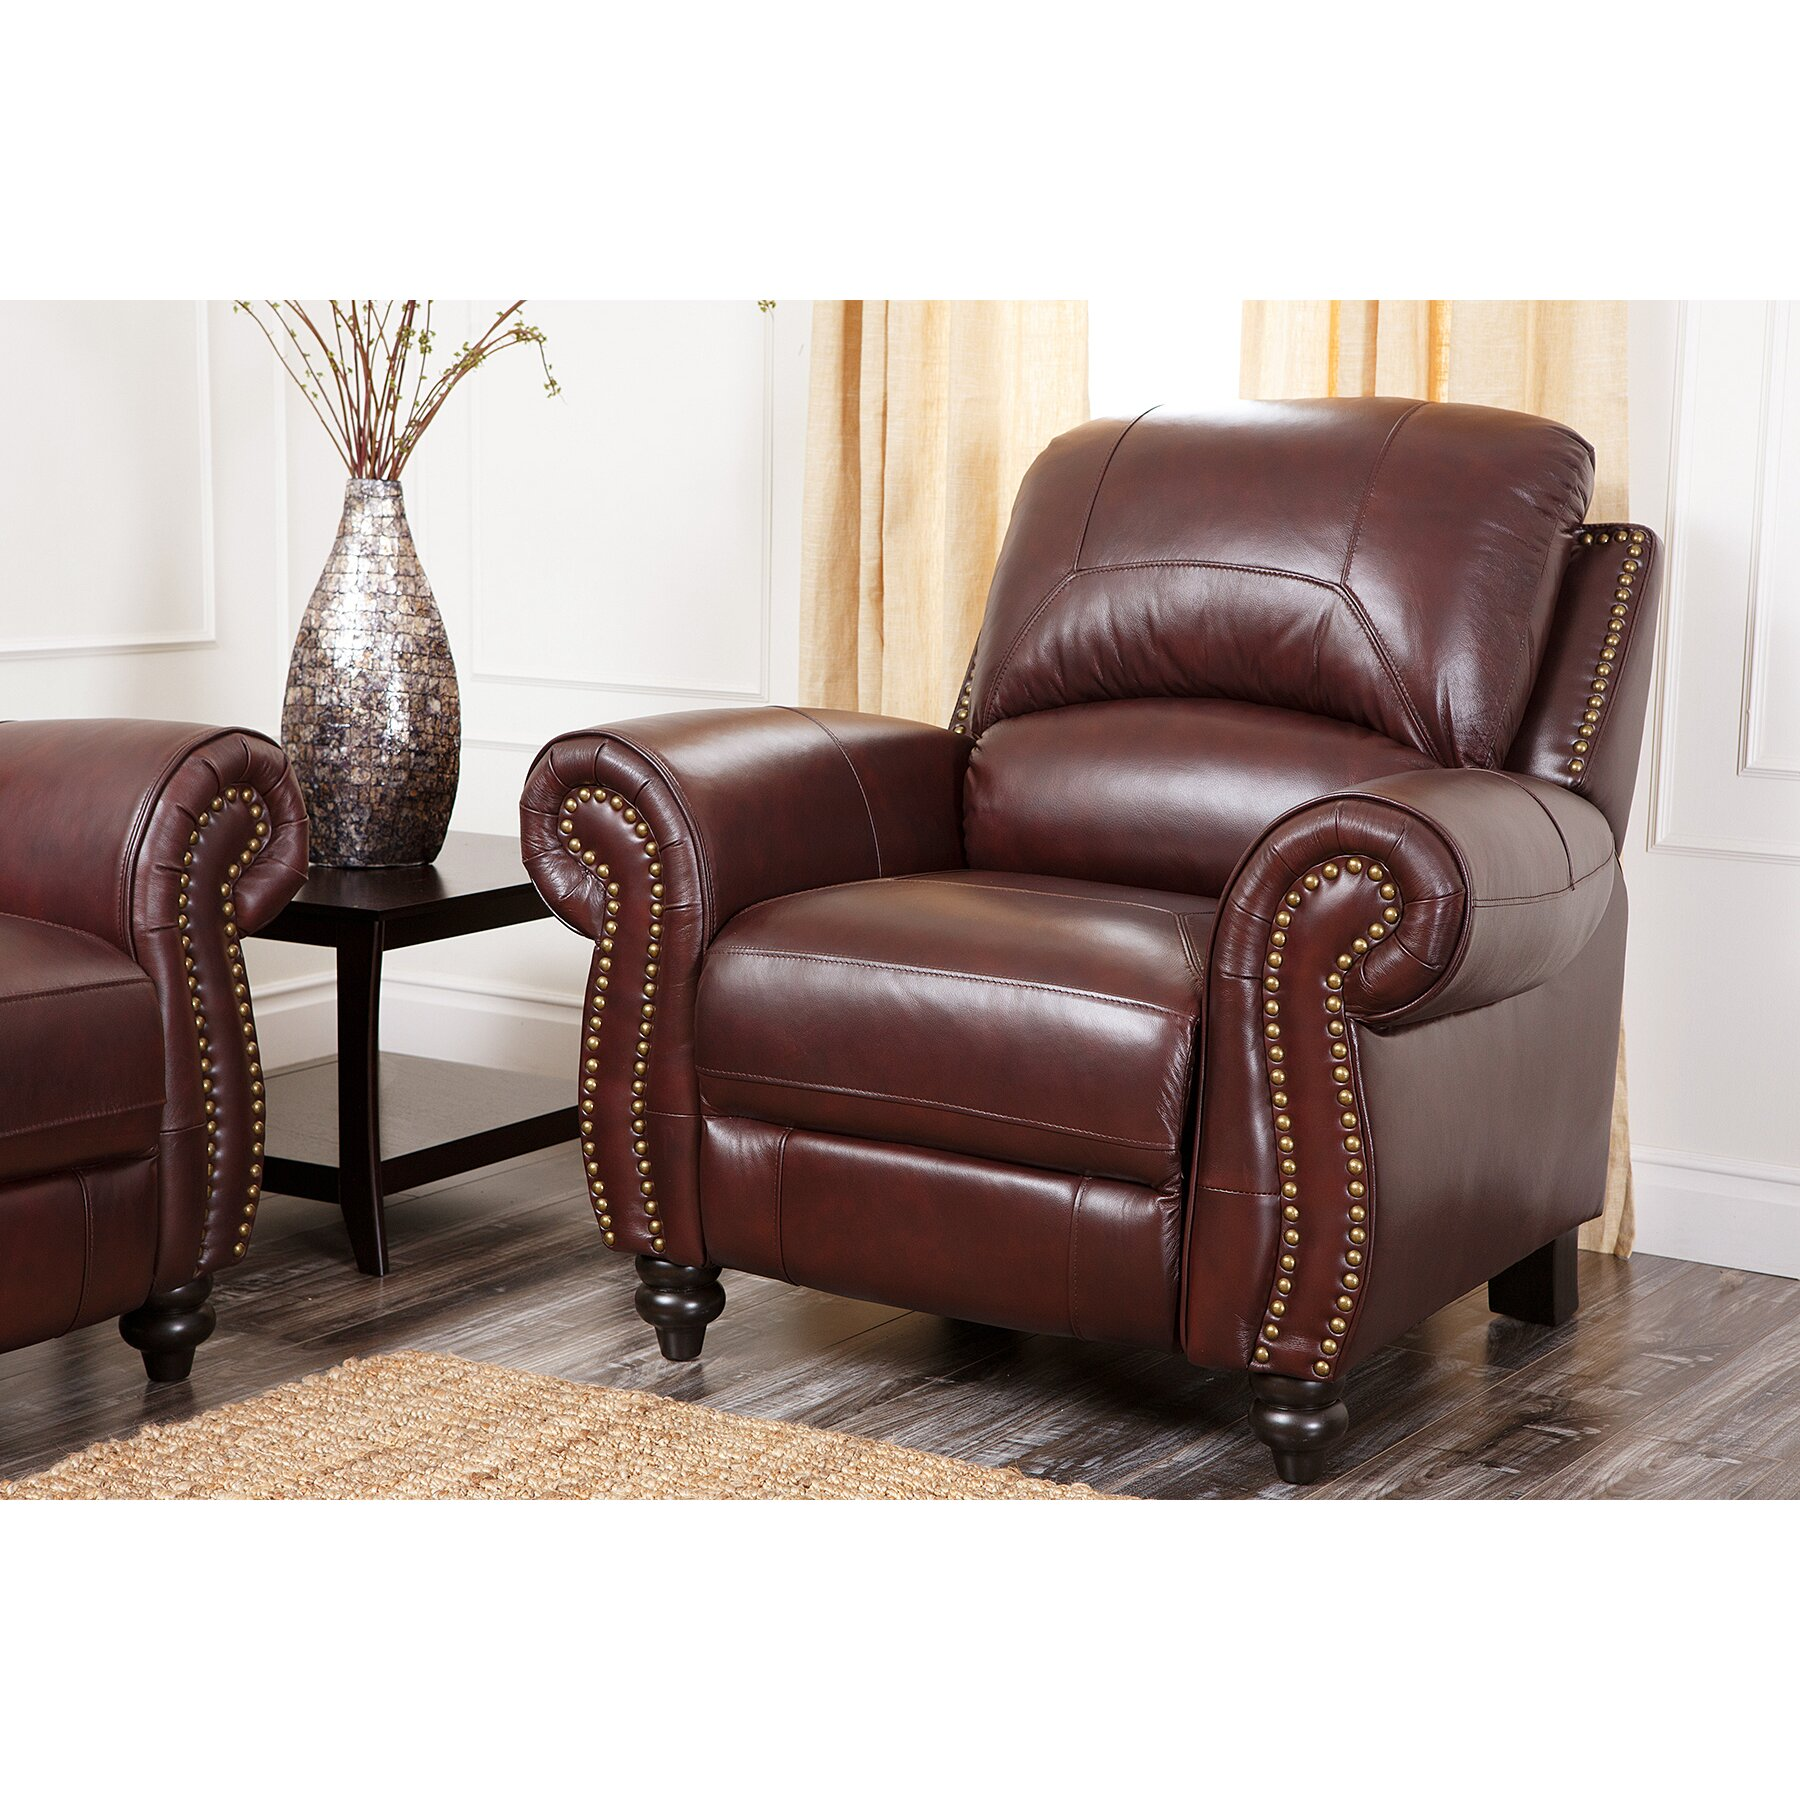 Living Room Arm Chairs Darby Home Co Kahle Leather Arm Chair Recliner Reviews Wayfair